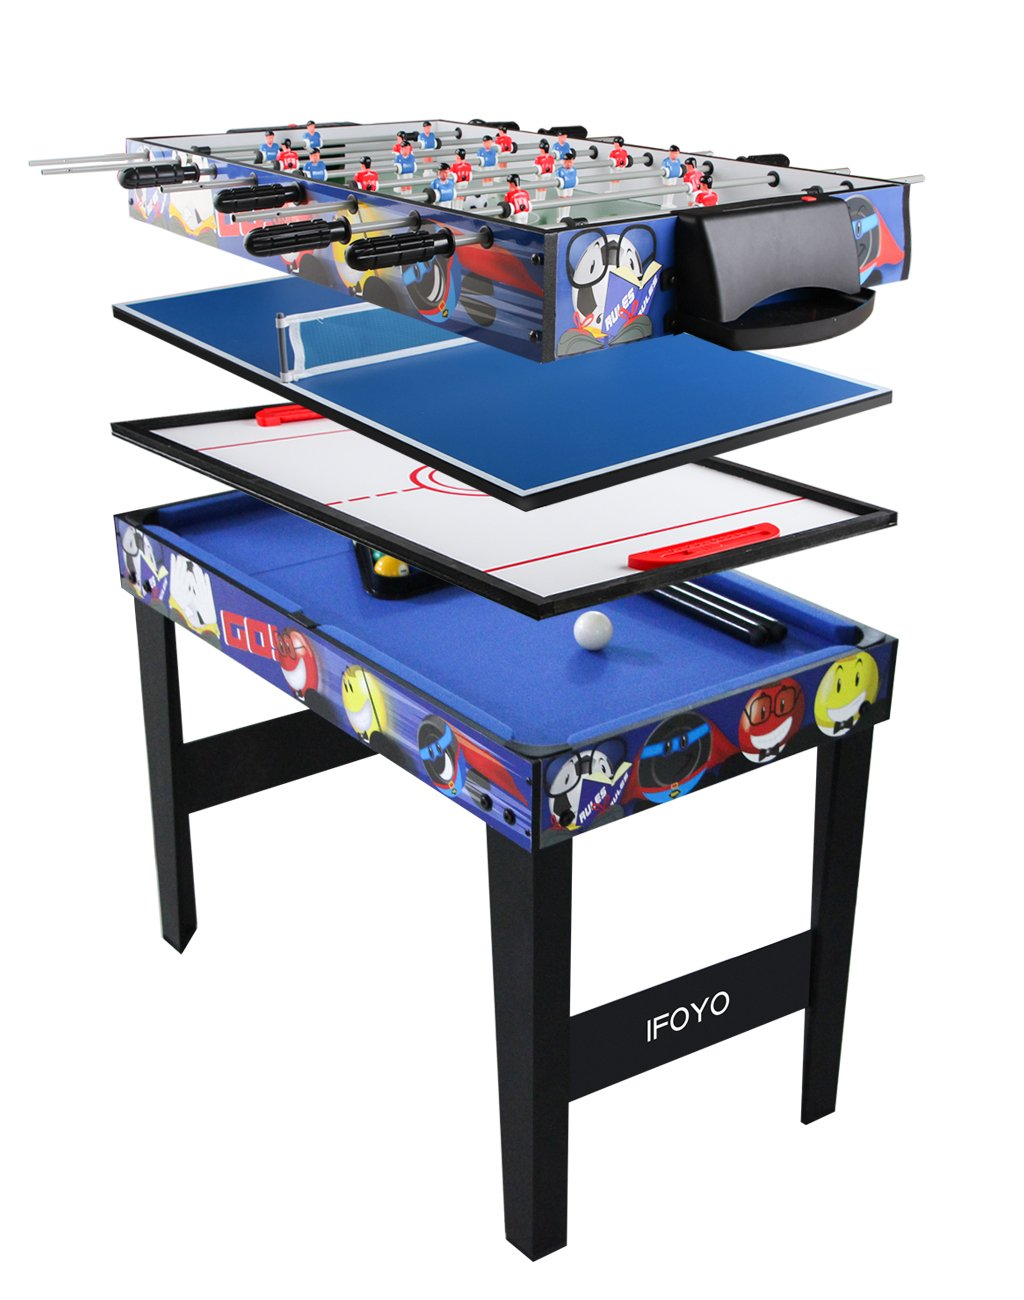 IFOYO Multi Function 4 in 1 Combo Game Table, Steady Pool Table, Hockey Table, Soccer Foosball Table, Table Tennis Table, 31.5in, Blue by IFOYO